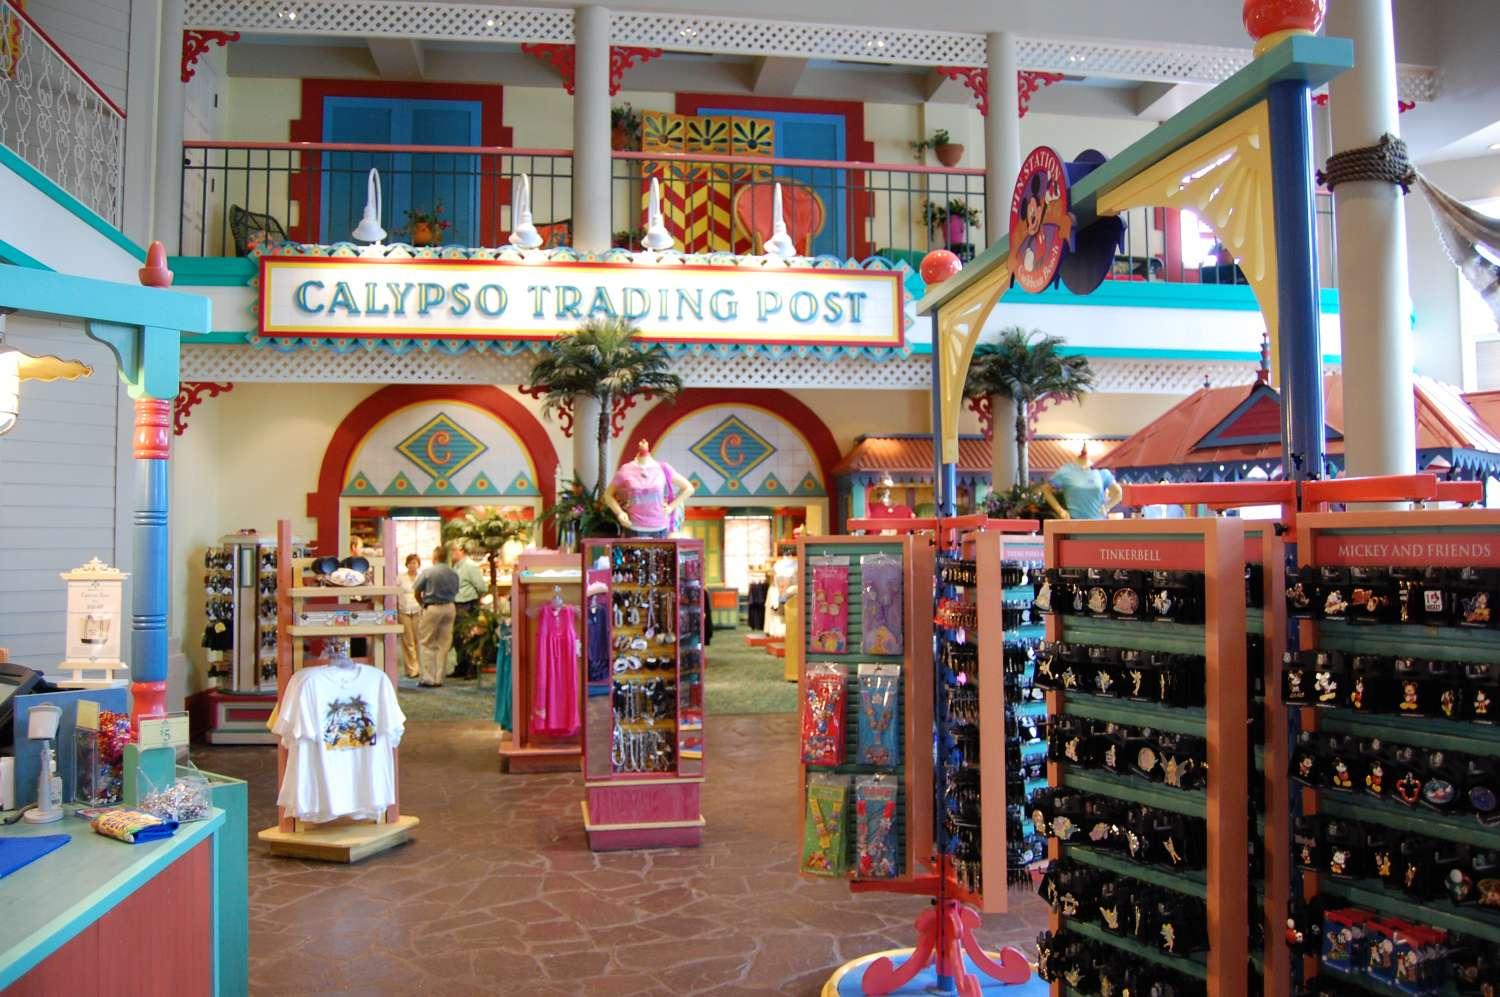 Disney's-Caribbean-Beach-Resort-Calypso-Trading-Post.jpg